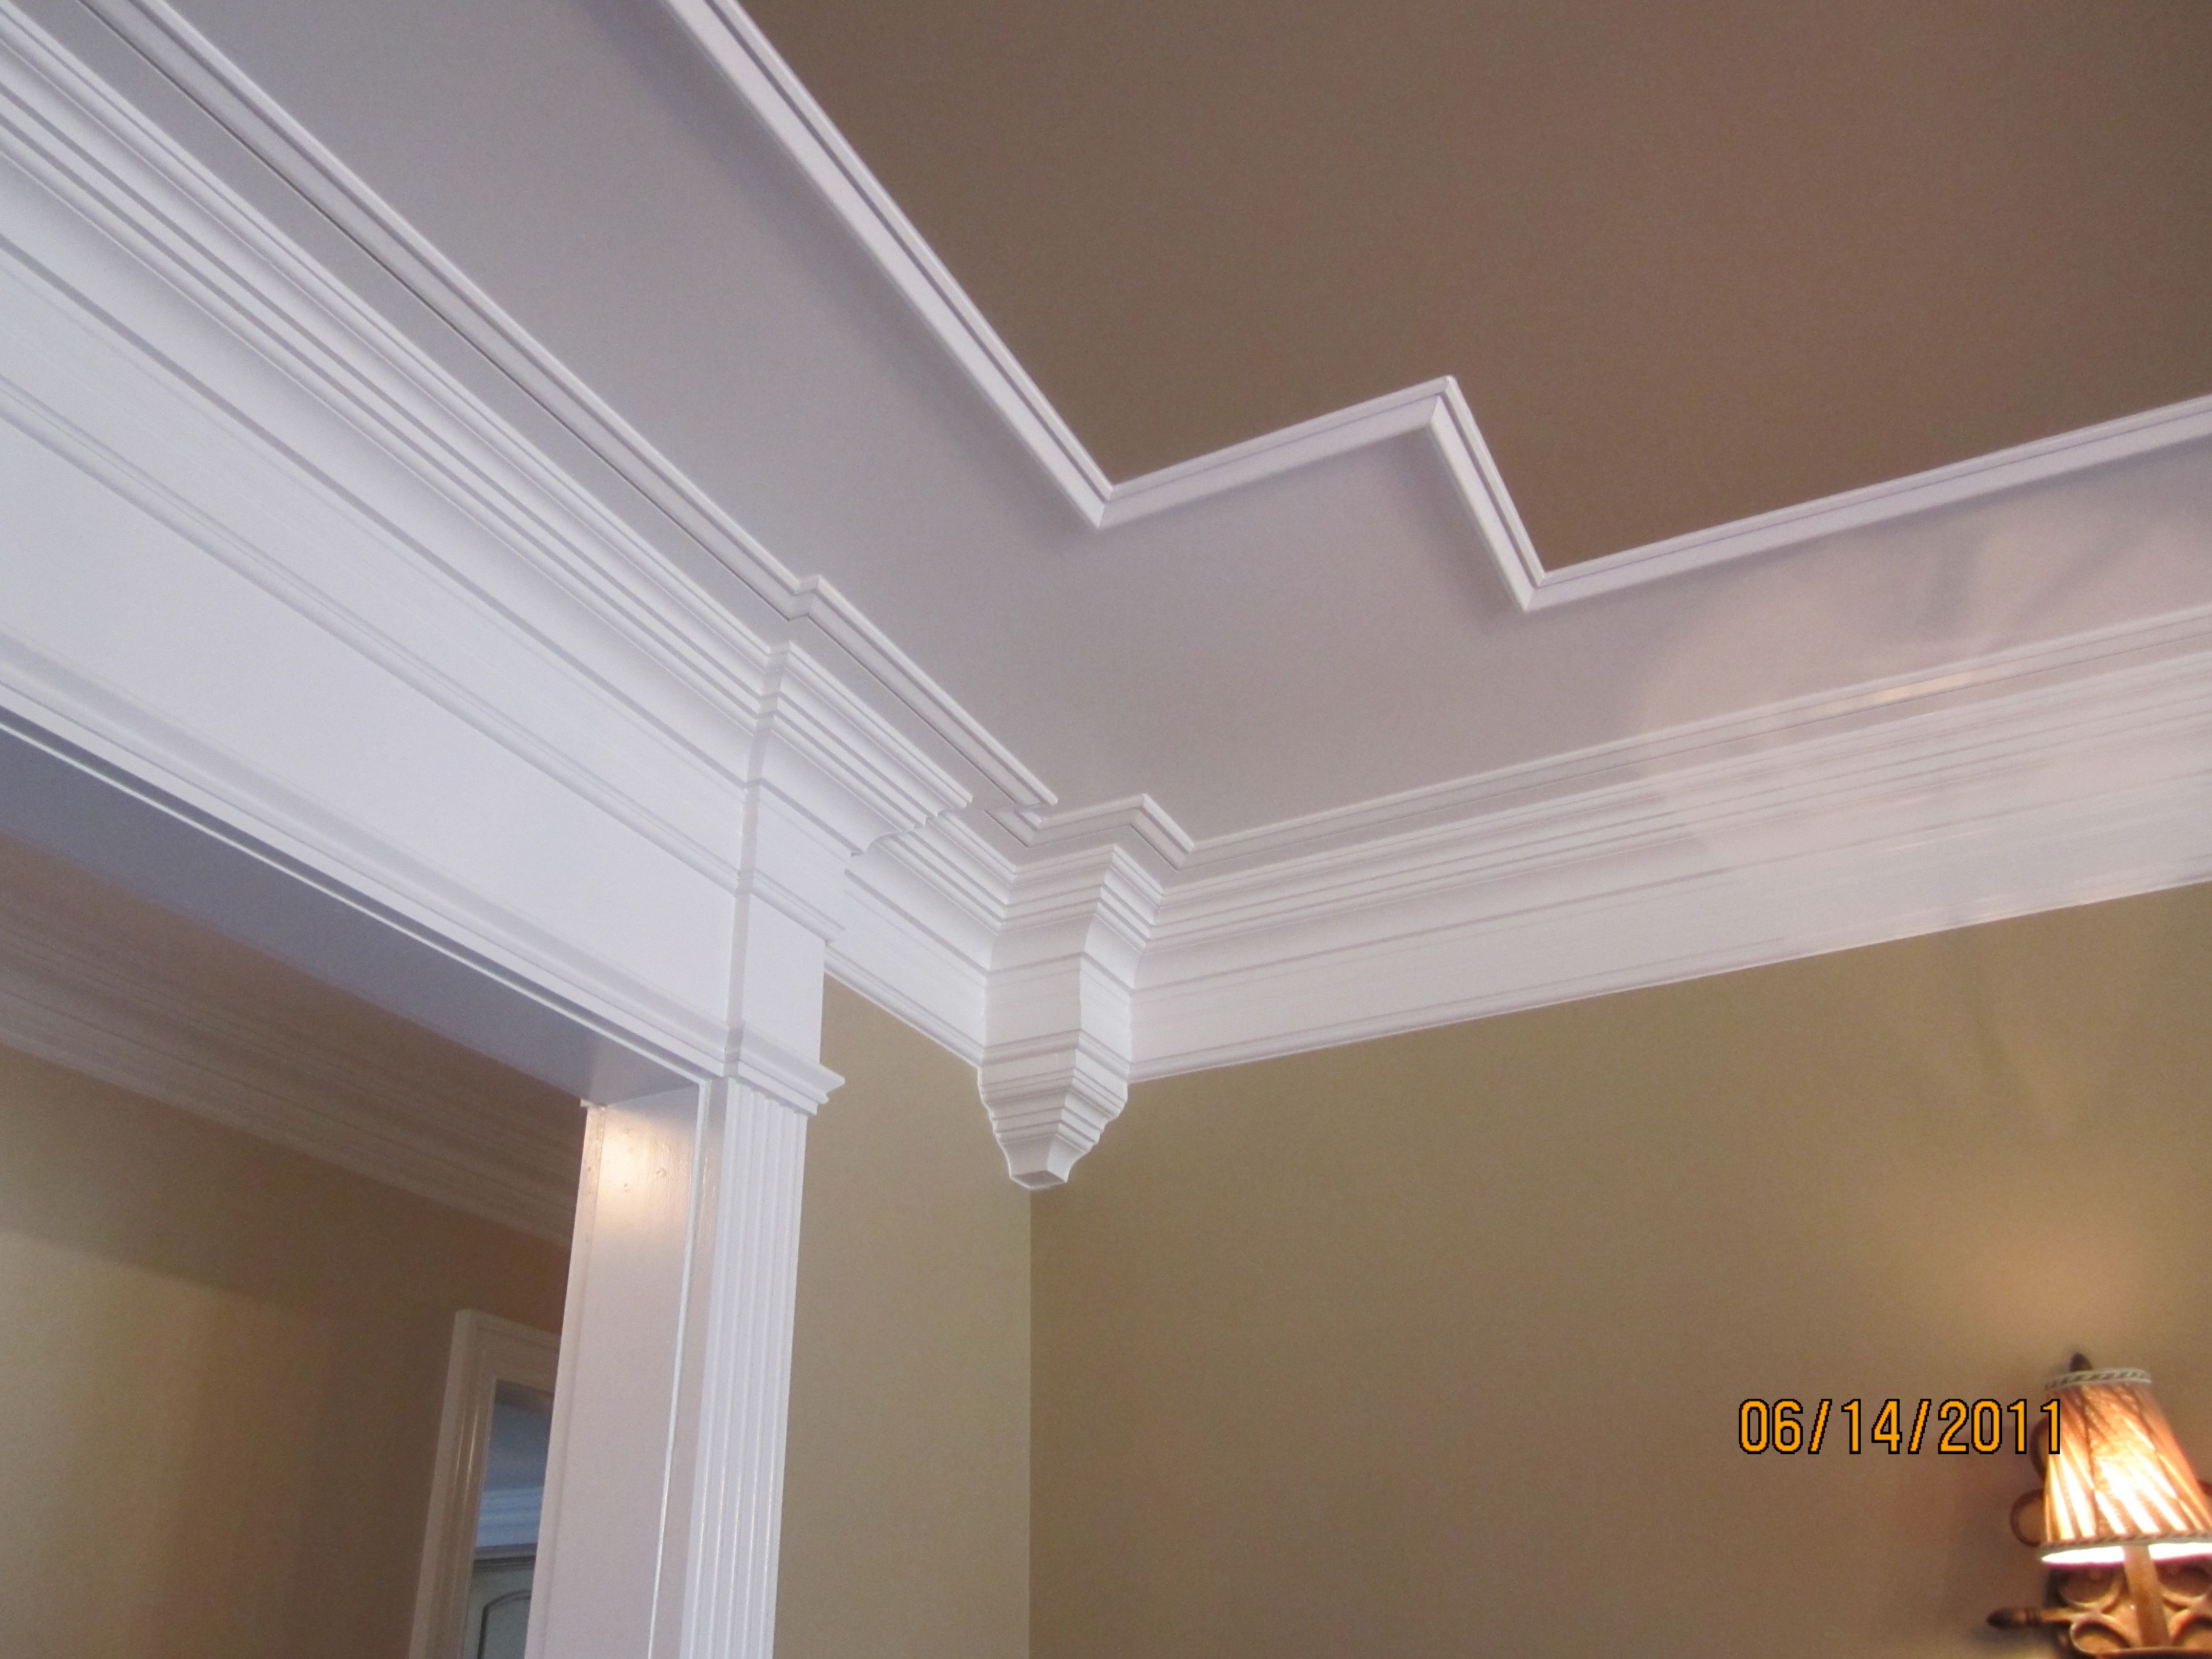 Design Tray Coffered Ceiling Into Header Over Cased Opening